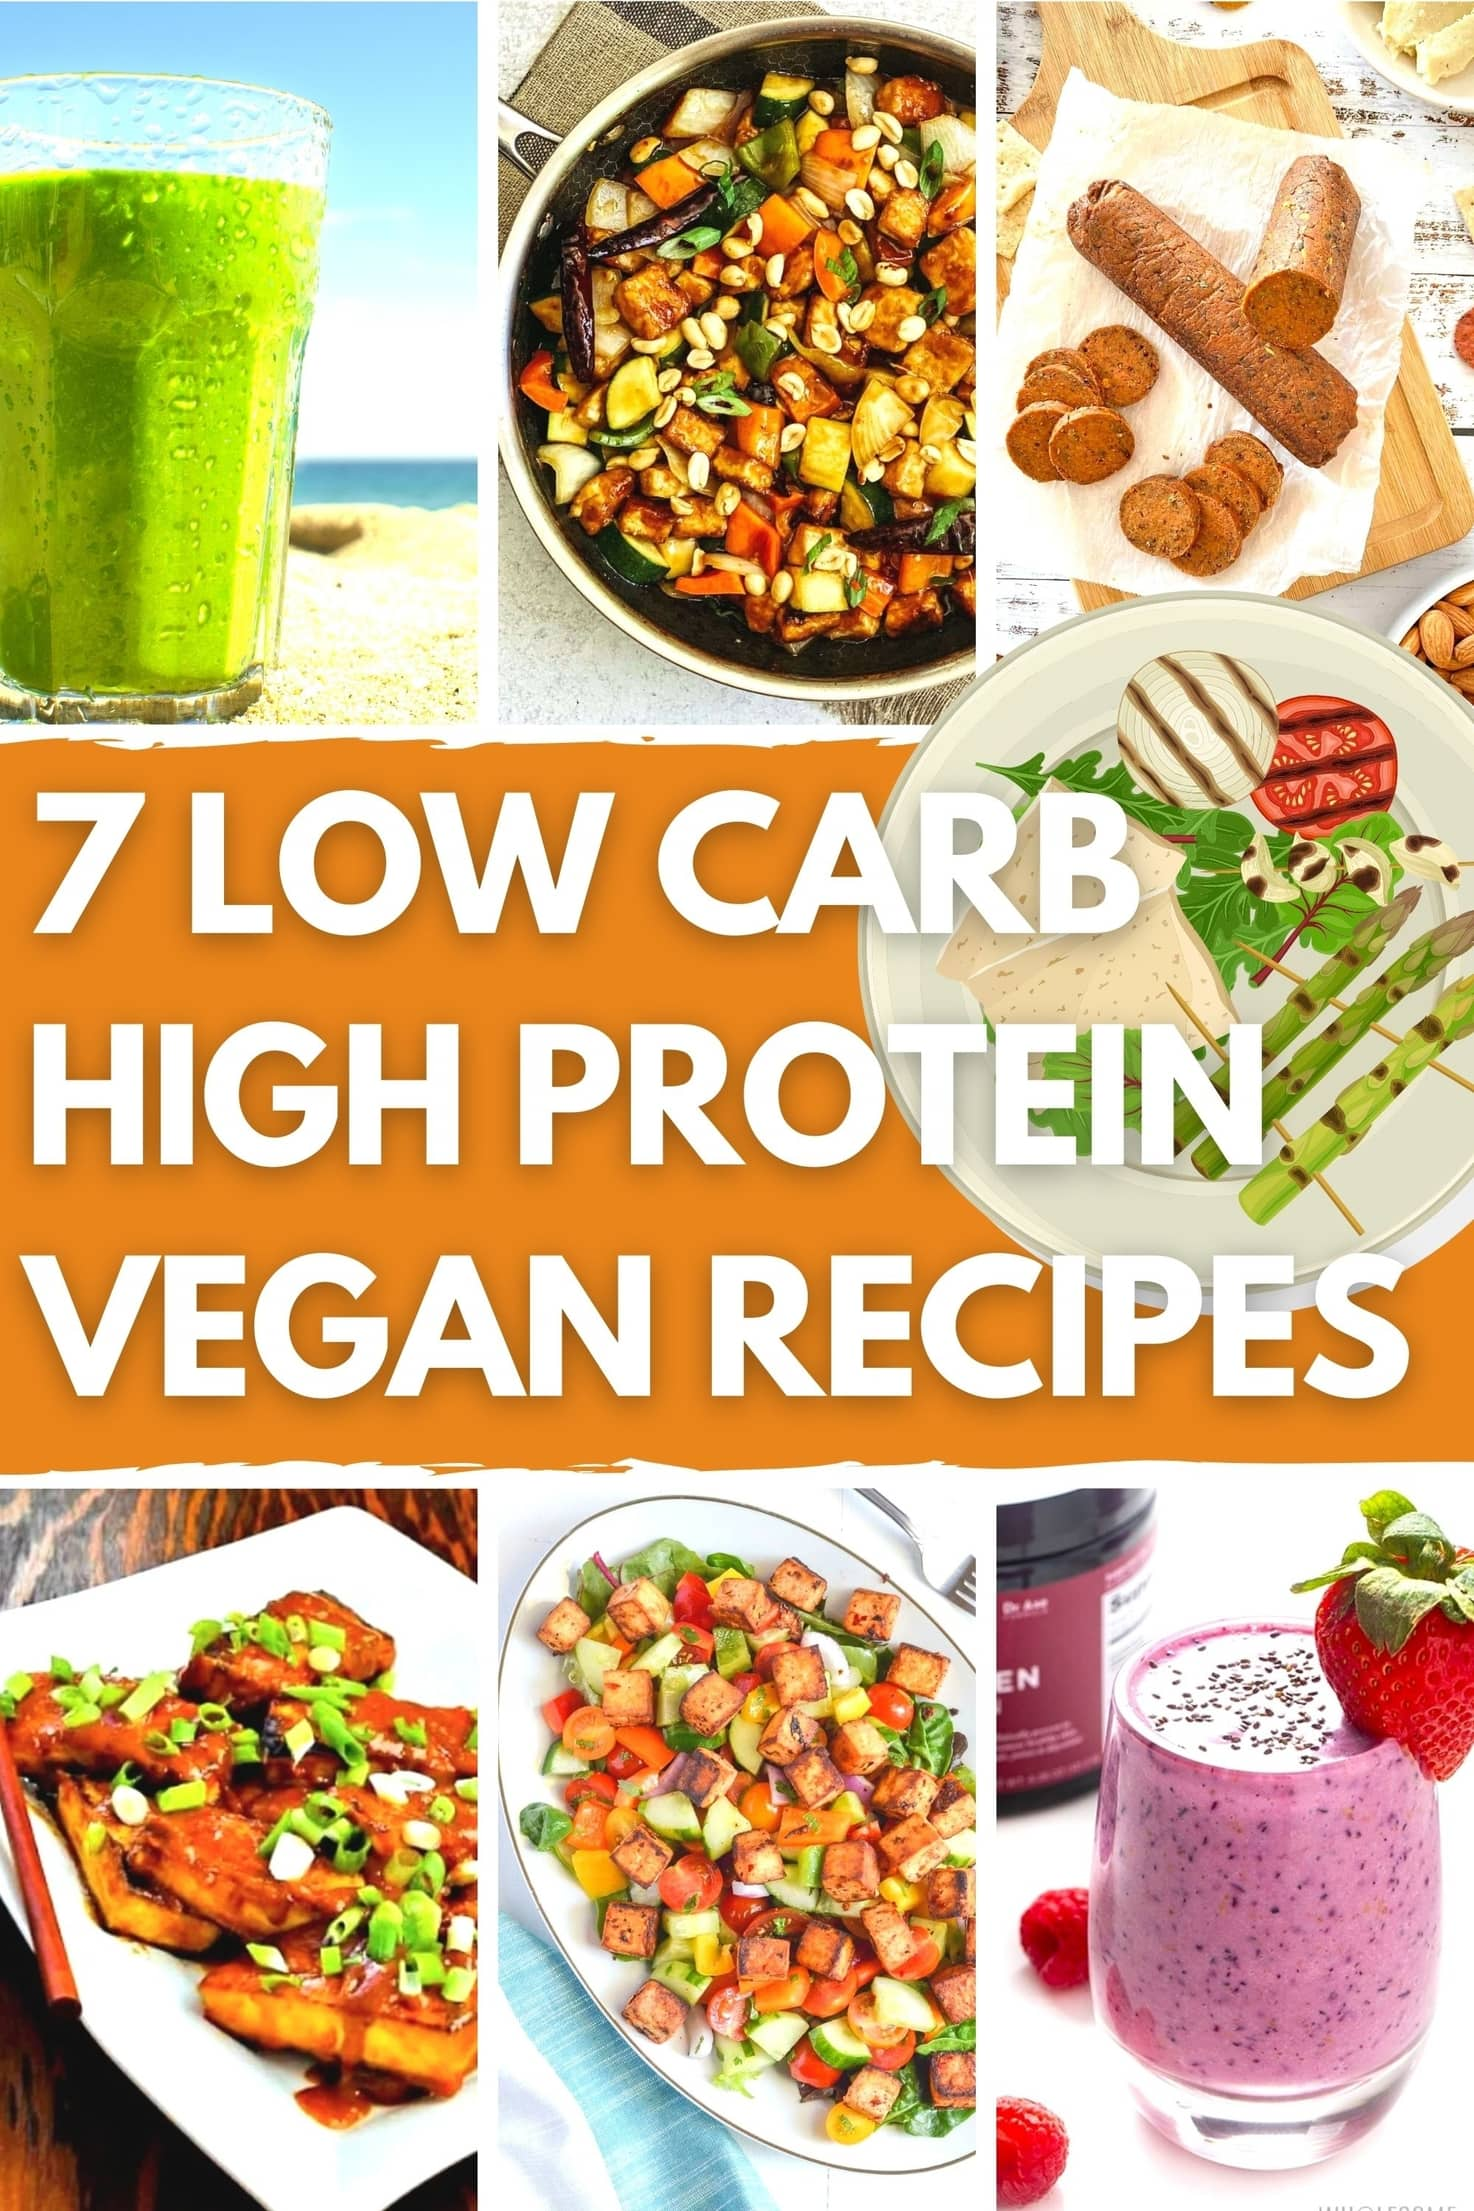 7 Low Carb High Protein Vegan Recipes - Title Image | Hurry The Food Up